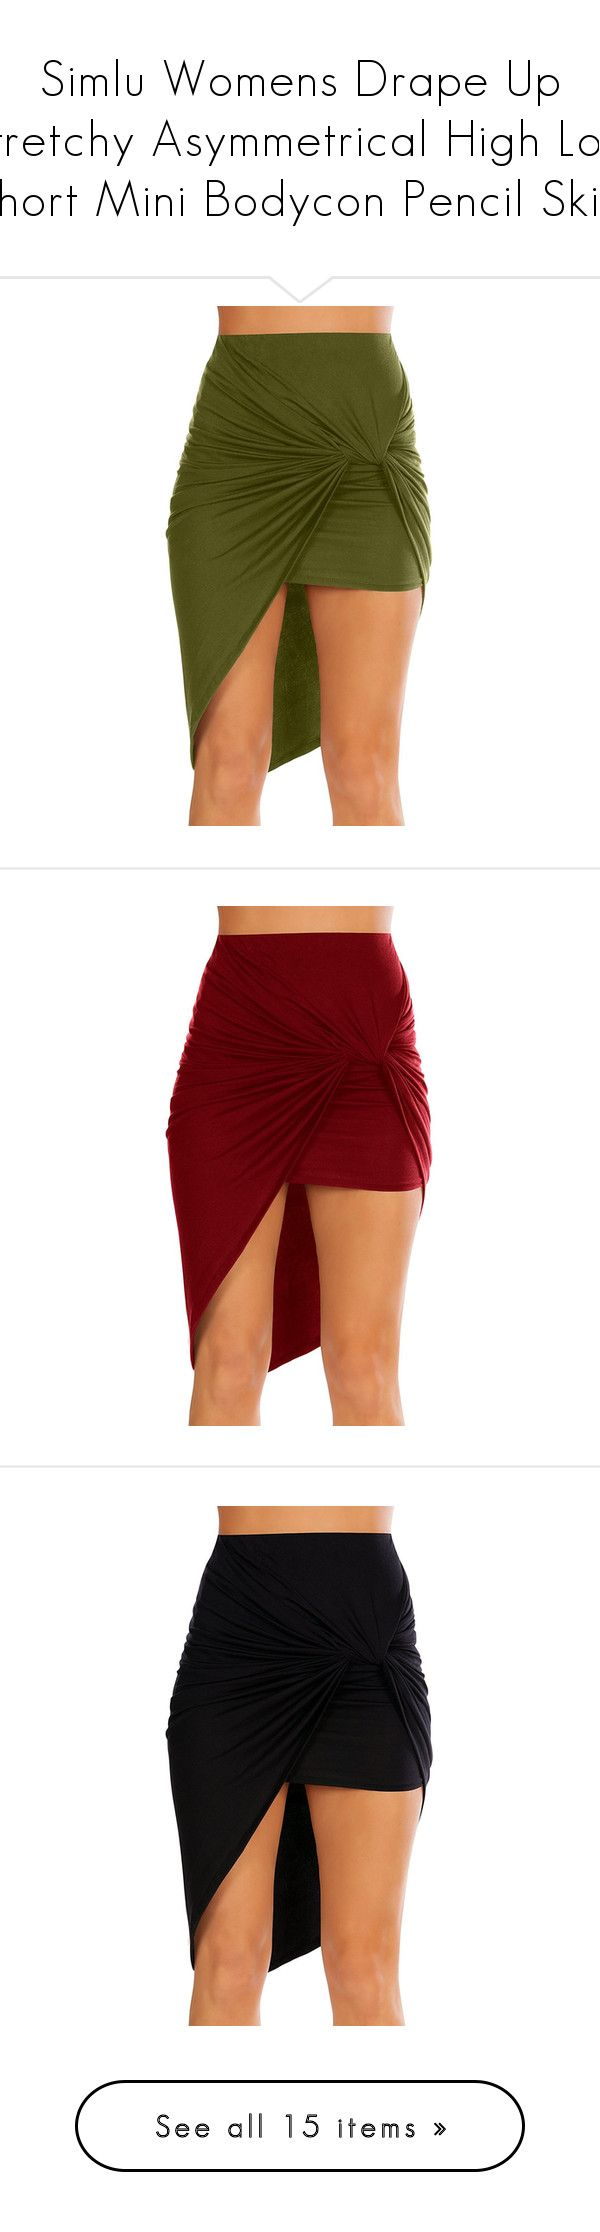 """Simlu Womens Drape Up Stretchy Asymmetrical High Low Short Mini Bodycon Pencil Skirt"" by simlu-clothing ❤ liked on Polyvore featuring skirts, mini skirts, red bodycon skirt, short pencil skirt, bodycon pencil skirt, red pencil skirt, red mini skirt, pencil skirts, bodycon mini skirt and hi lo skirt"